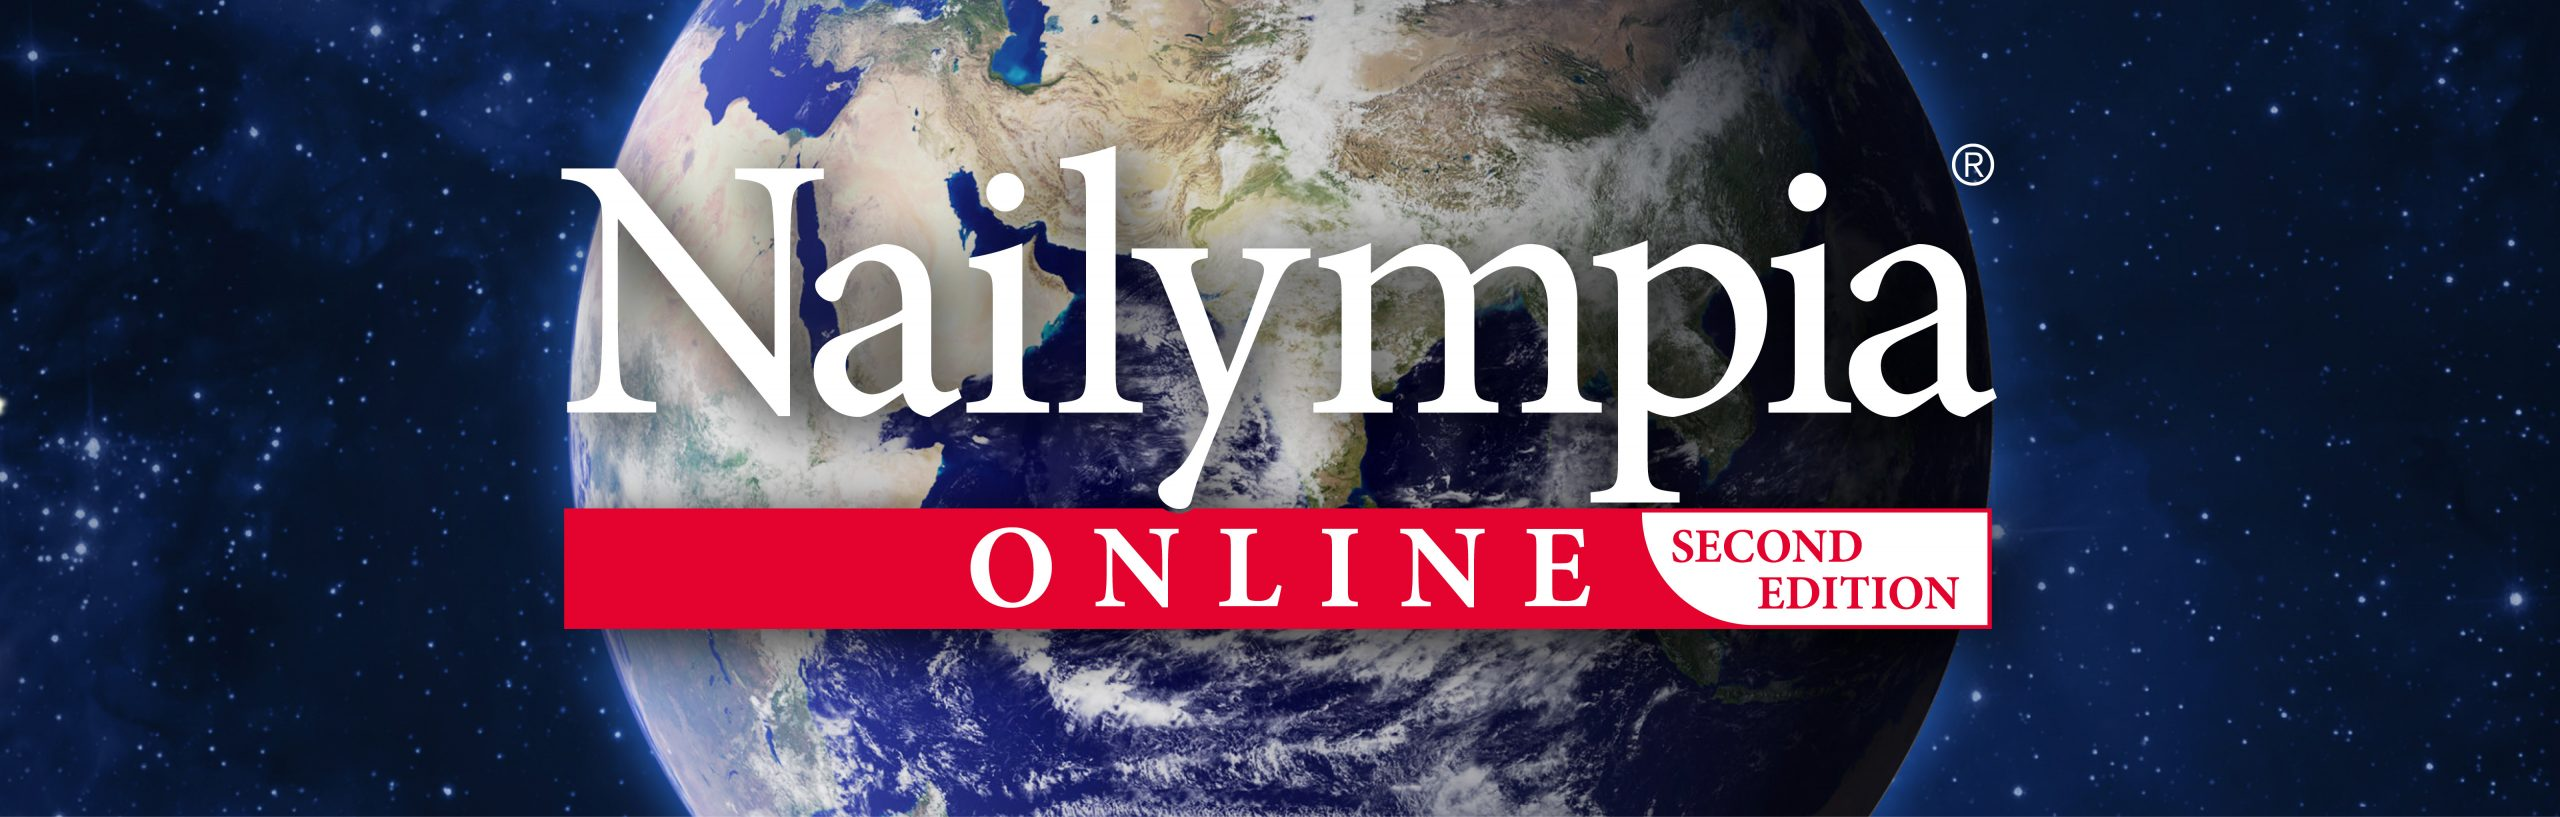 Nailympia Online Banner 2021